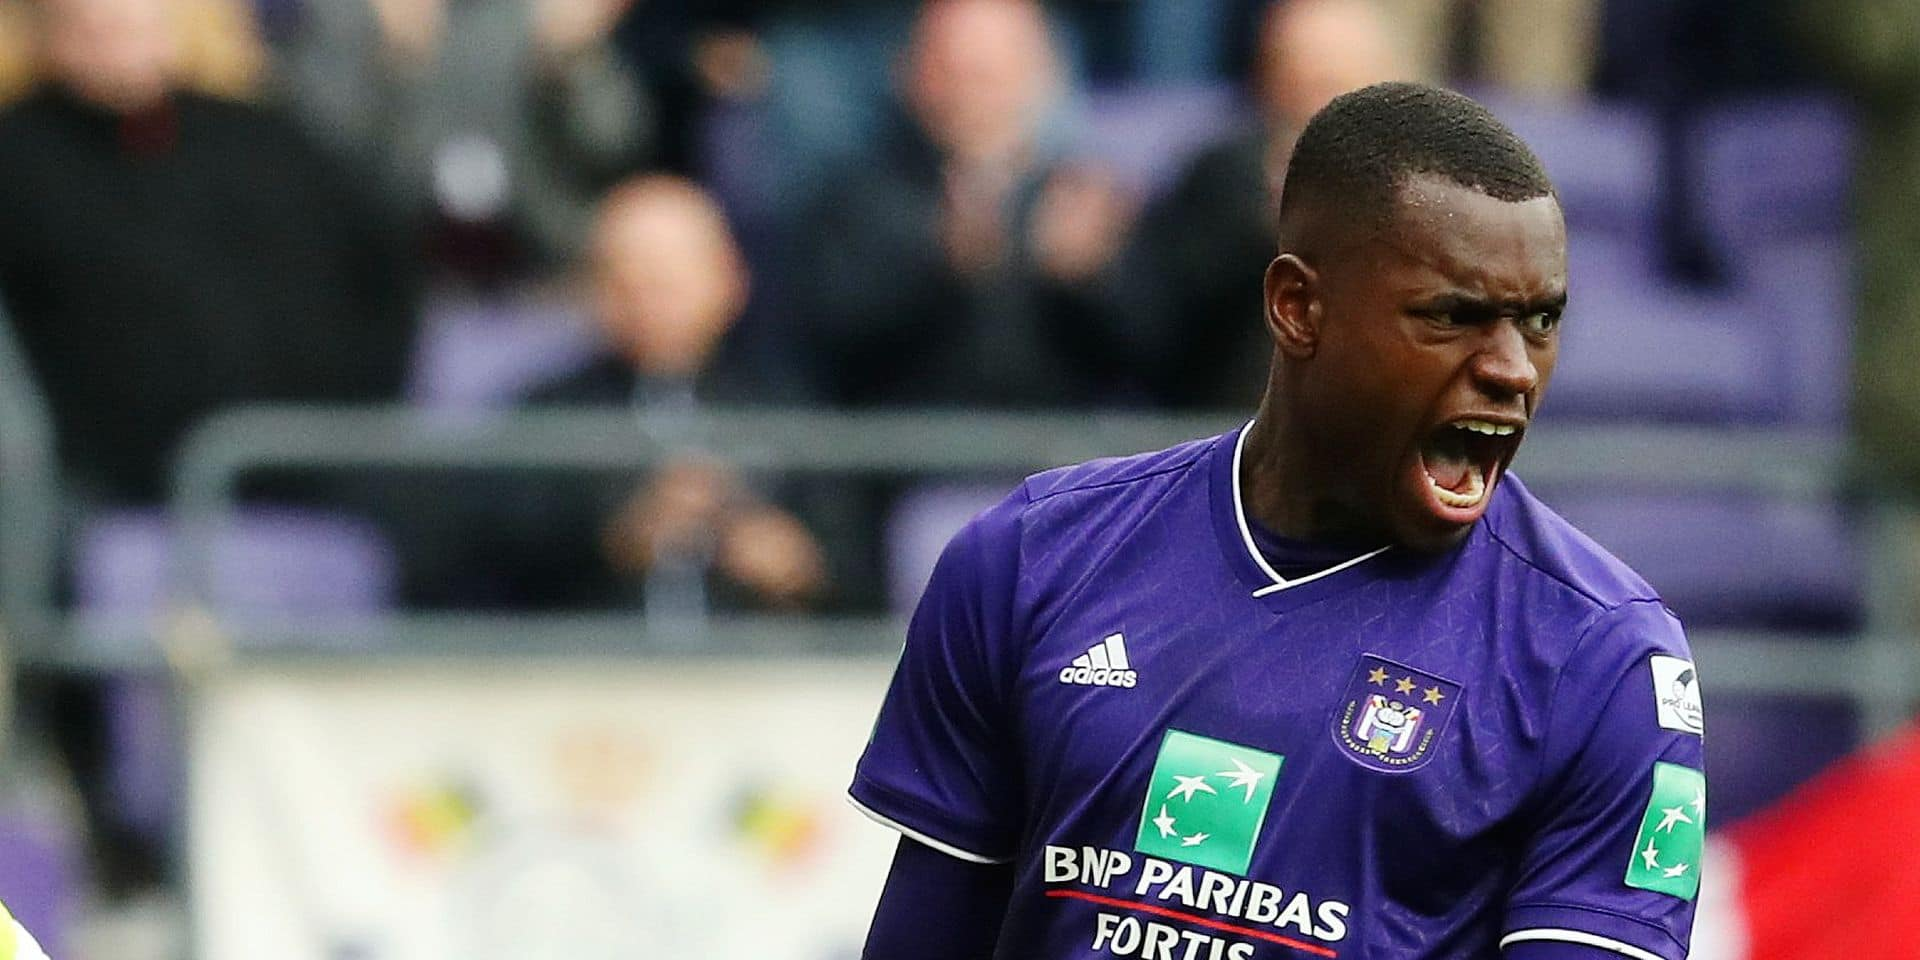 Anderlecht's Landry Dimata celebrates after scoring during a soccer game between RSC Anderlecht and Sporting Lokeren, Thursday 01 November 2018 in Brussels, on the 13th day of the 'Jupiler Pro League' Belgian soccer championship season 2018-2019. BELGA PHOTO VIRGINIE LEFOUR